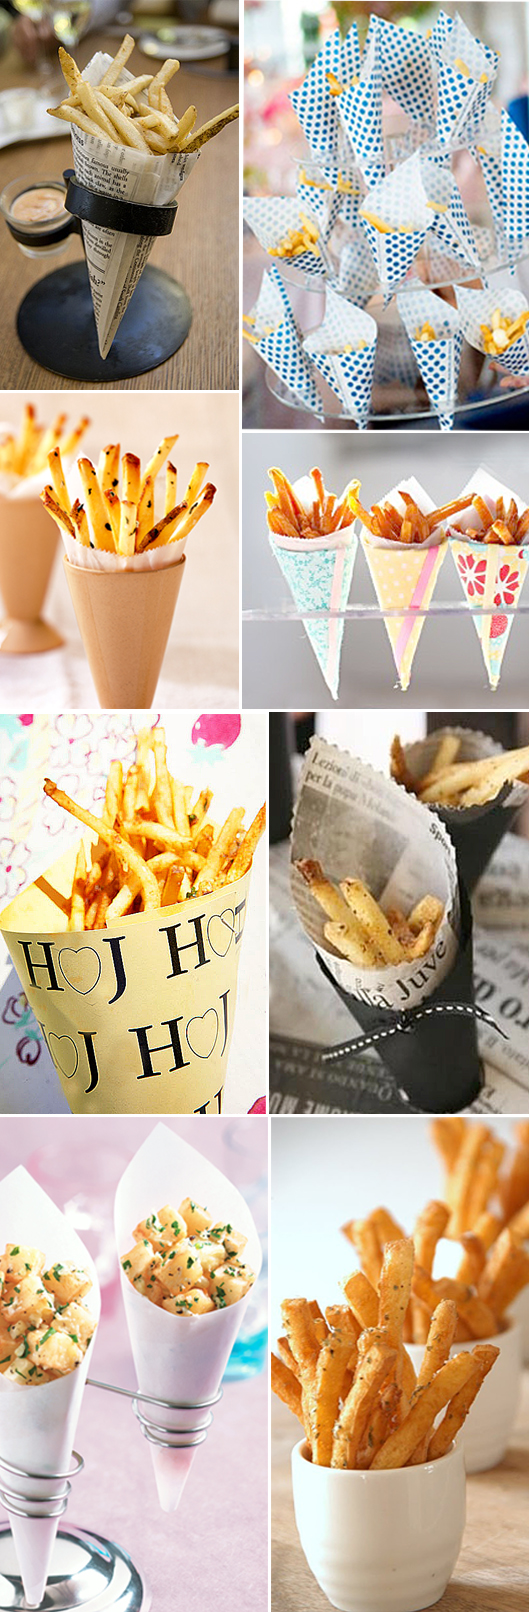 French Fries Served in Cups and Cones